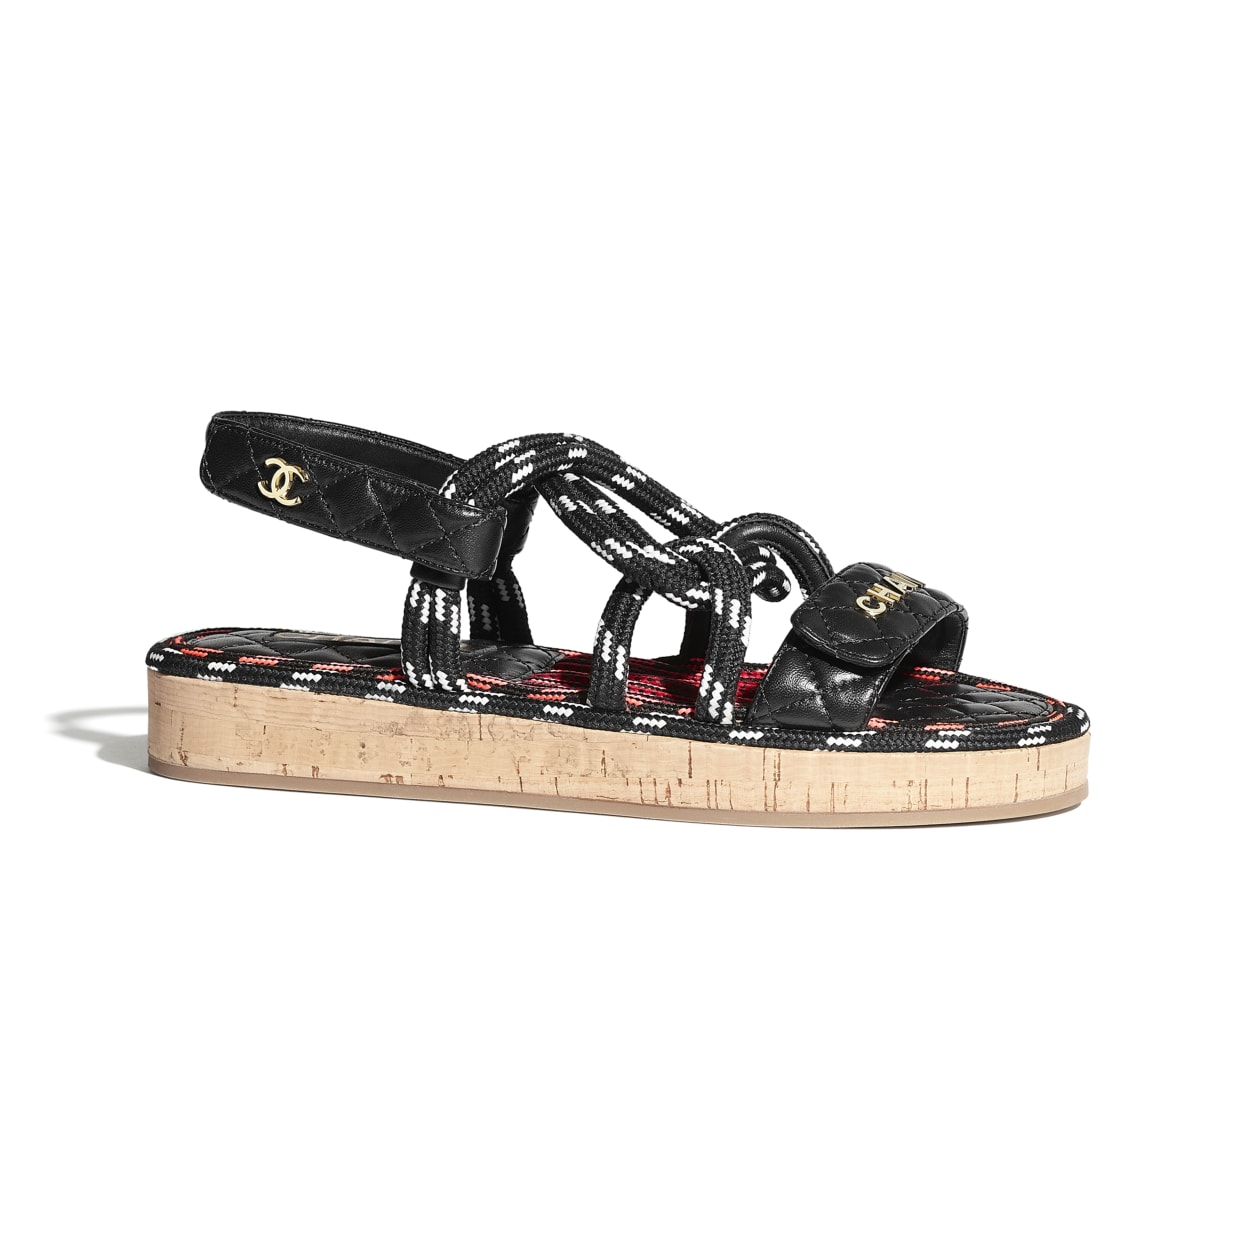 chanel-sandals-cord-lambskin-black-white